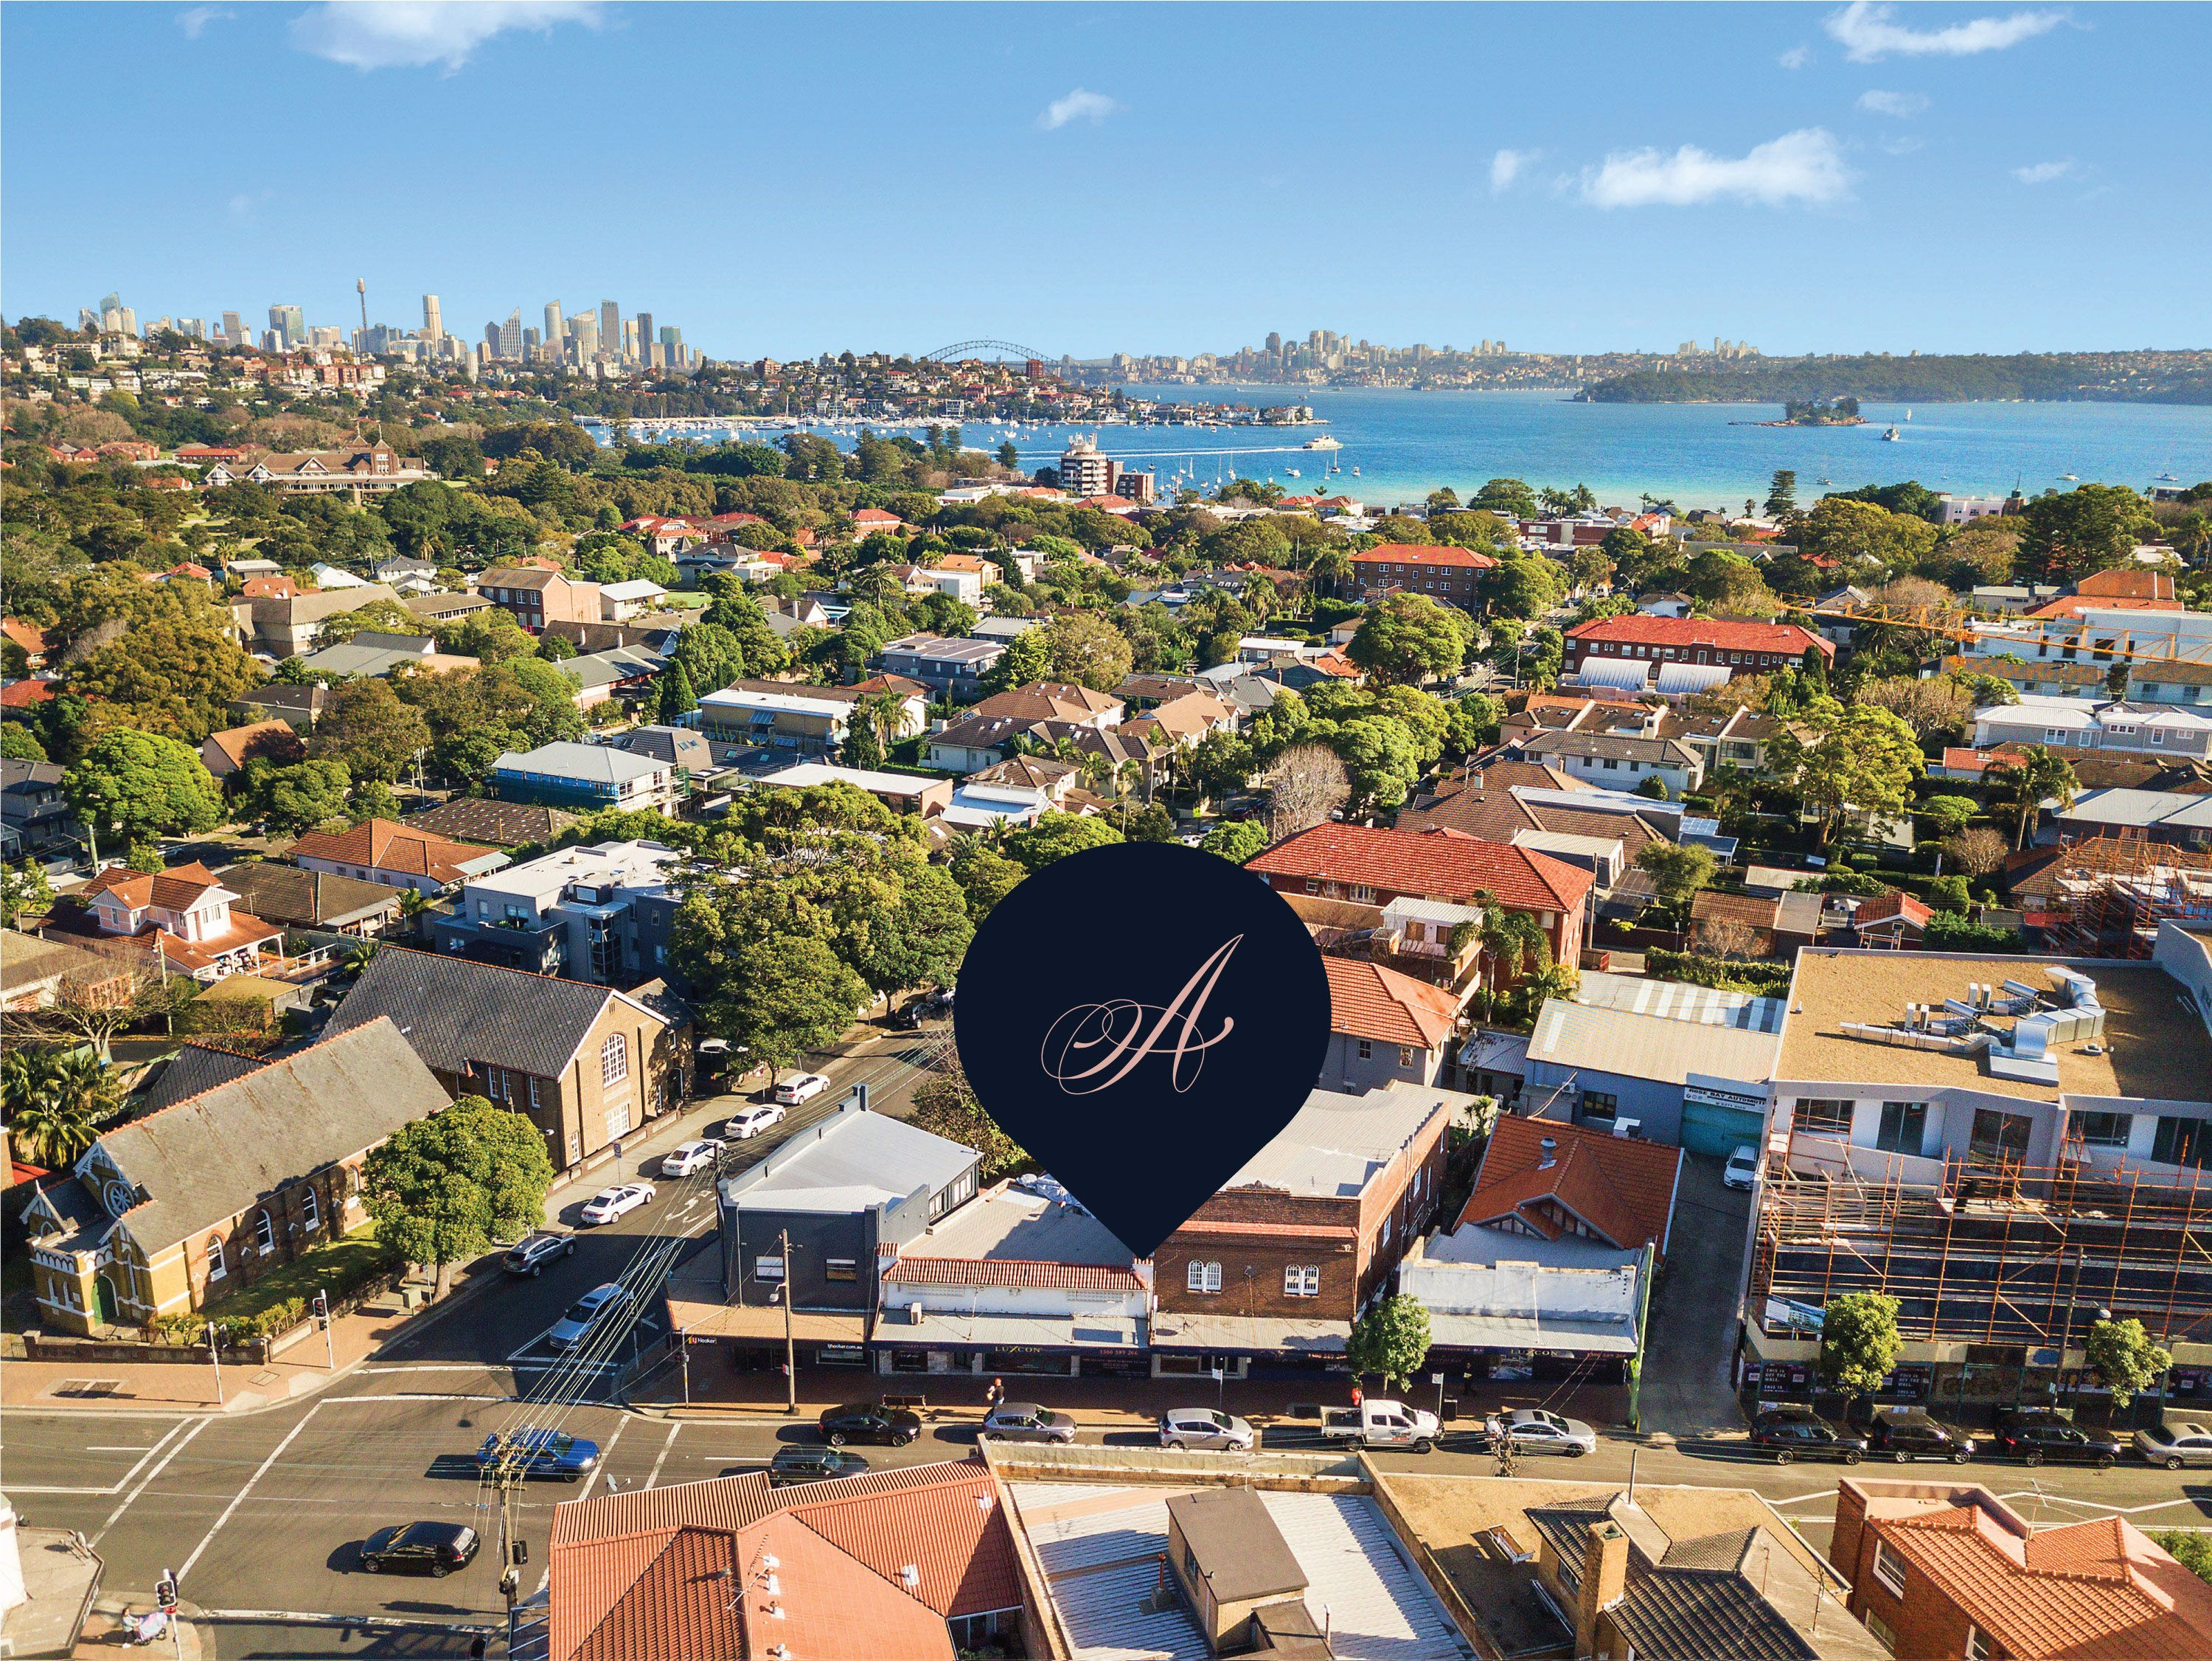 'THE ARISTOCRAT OF ROSE BAY' - The Art of Fine Living